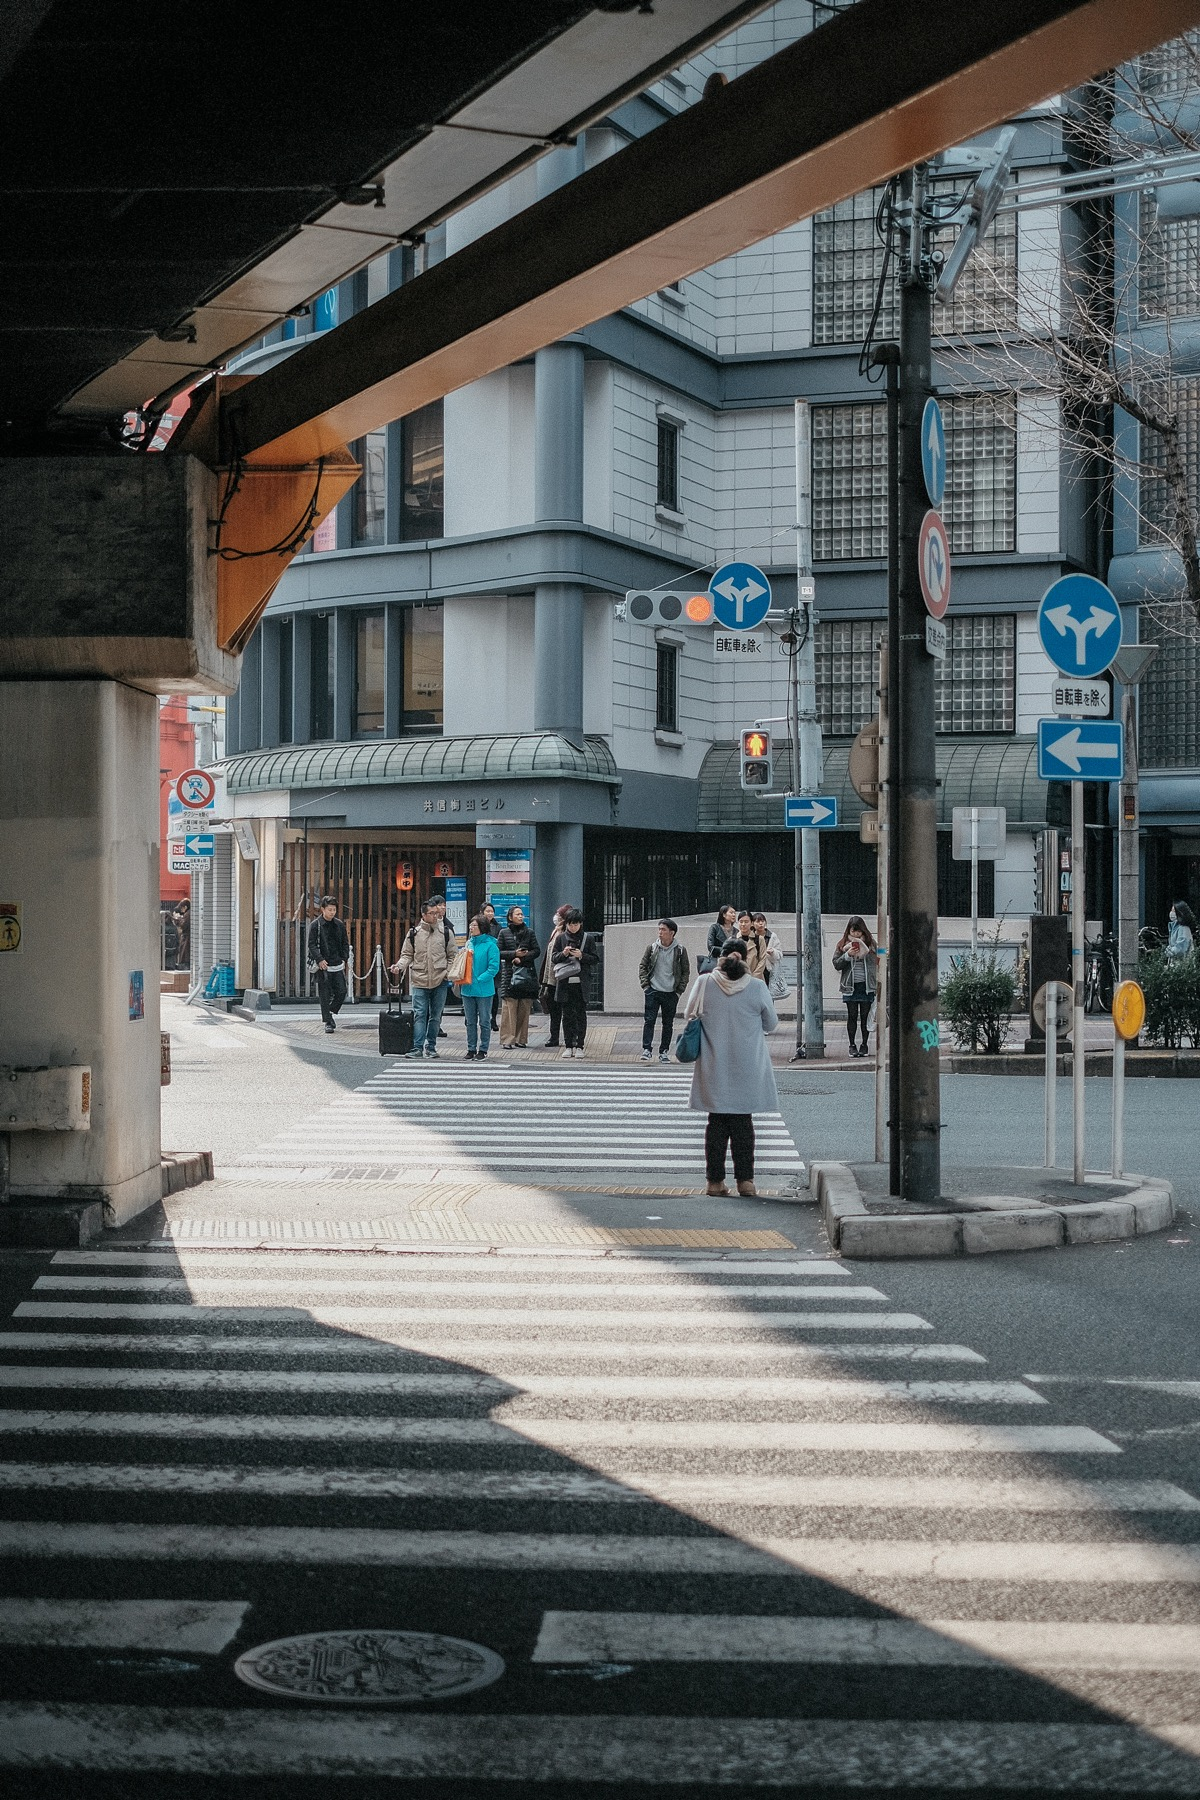 Kinlake-Japan-Osaka-Lifestyle-5947